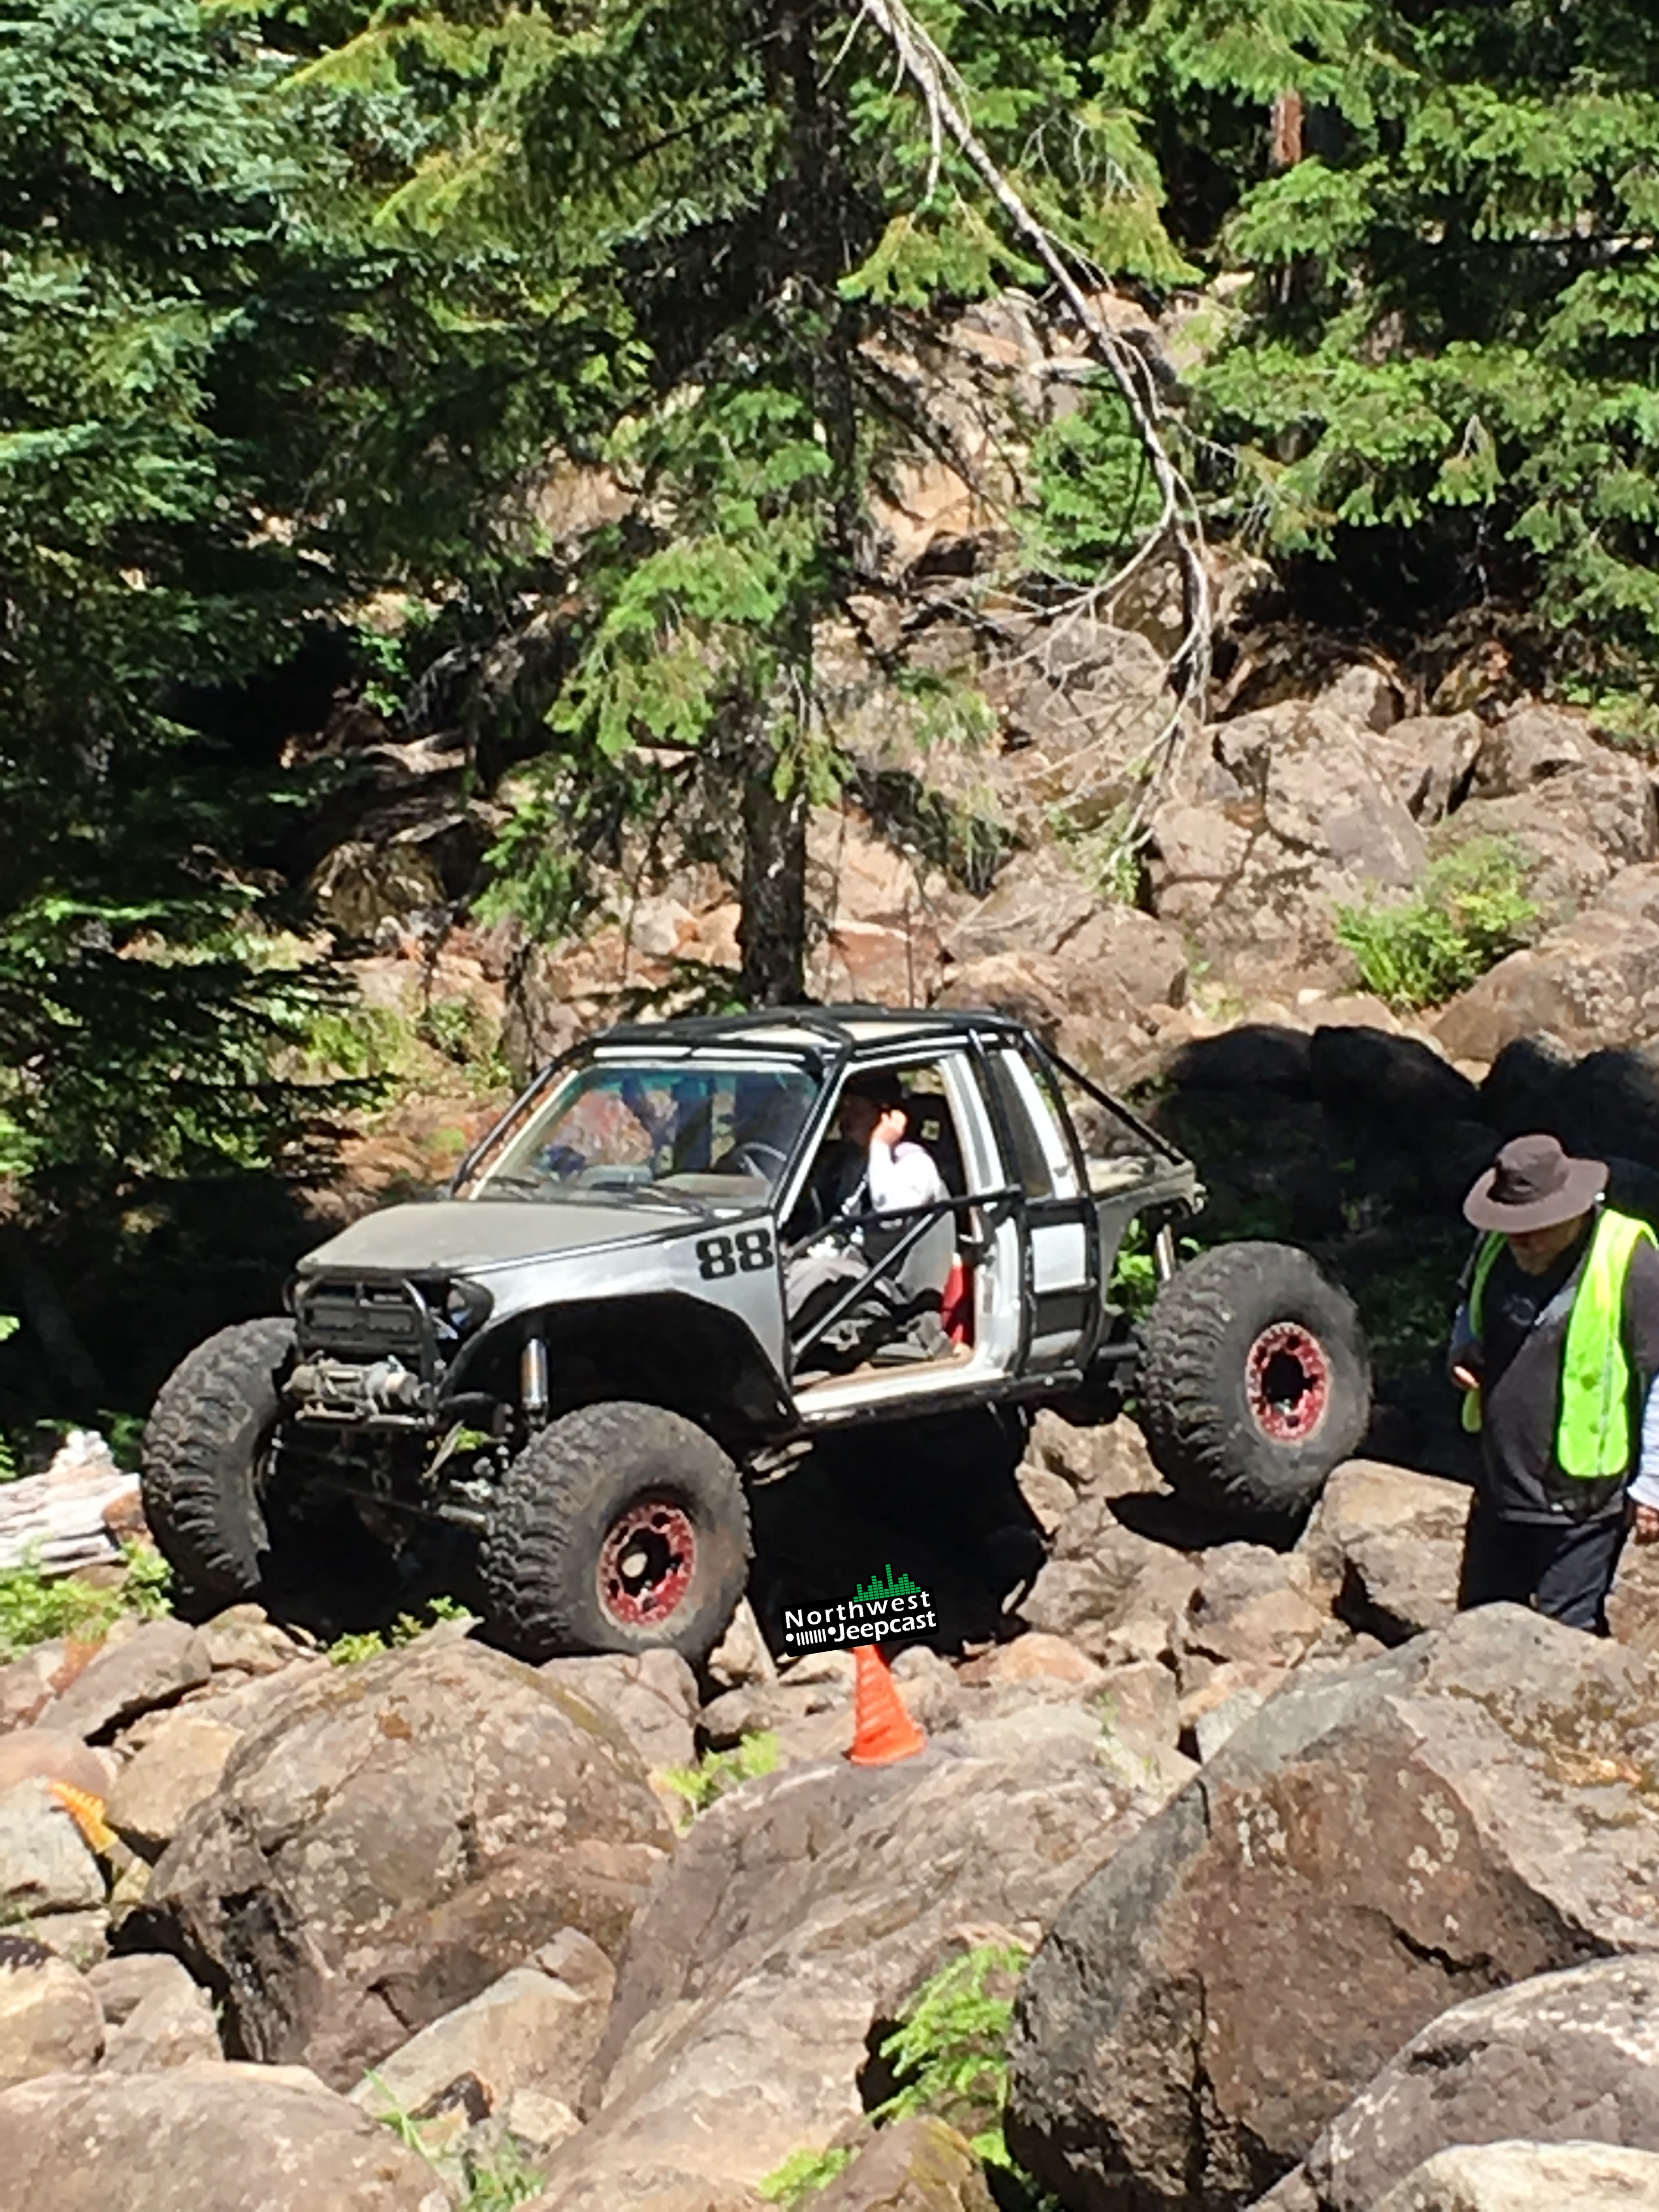 Northwest Jeepcast - Jeep Podcast - Crushers Rock Crawl 2017